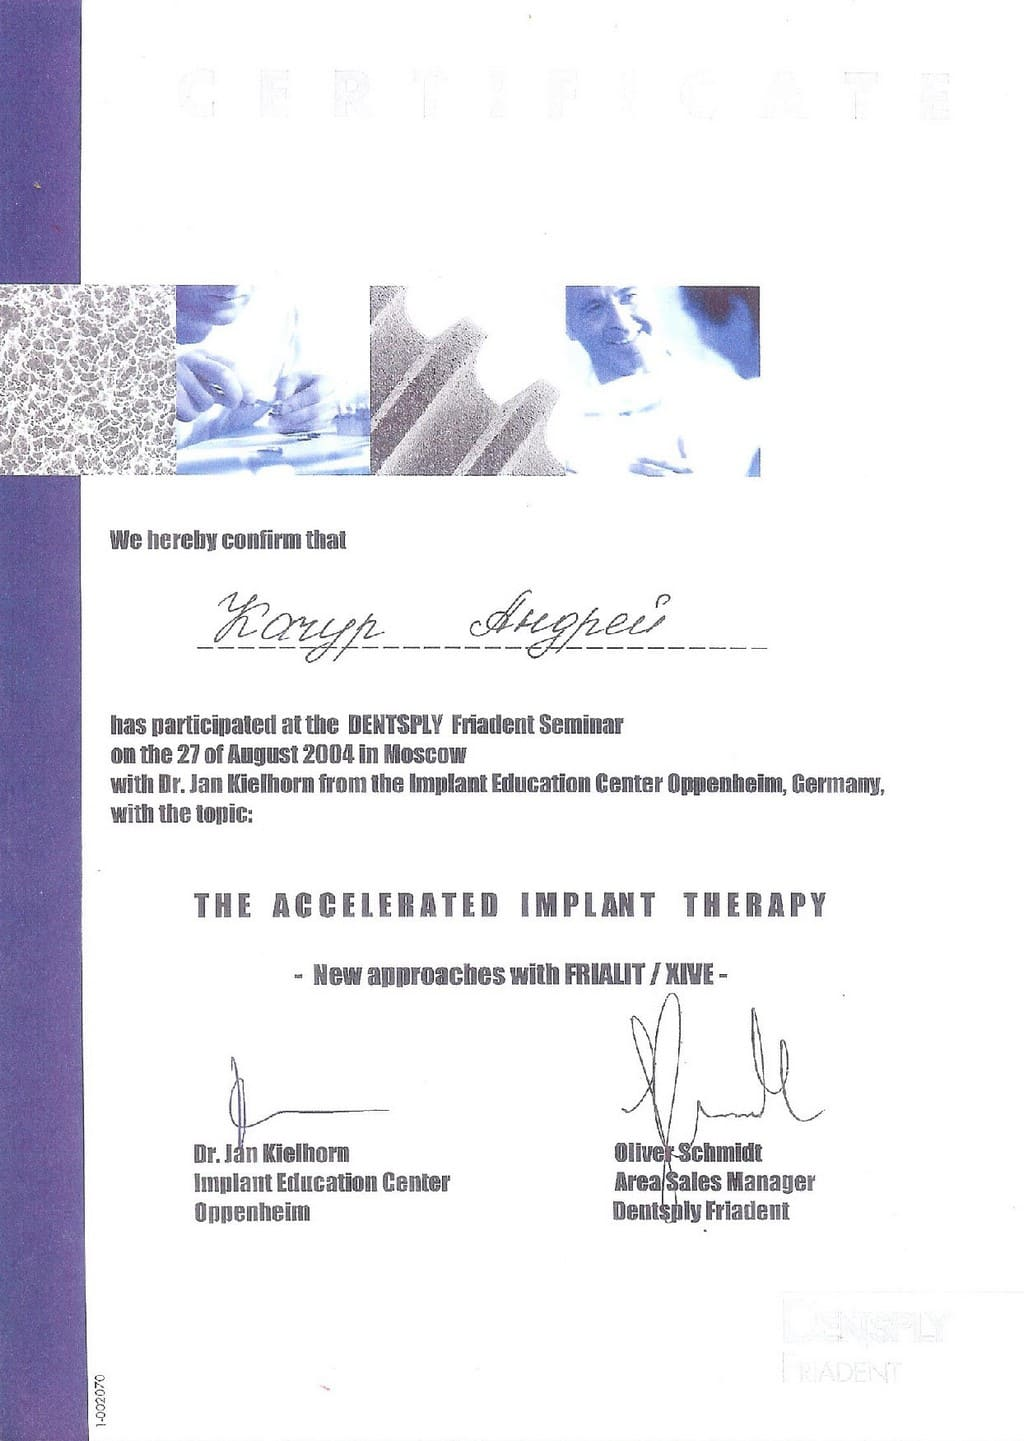 2004_08_27_Kachur_A_the-accelerated-implant-therapy-new-approaches-withfrialt-xive.jpg